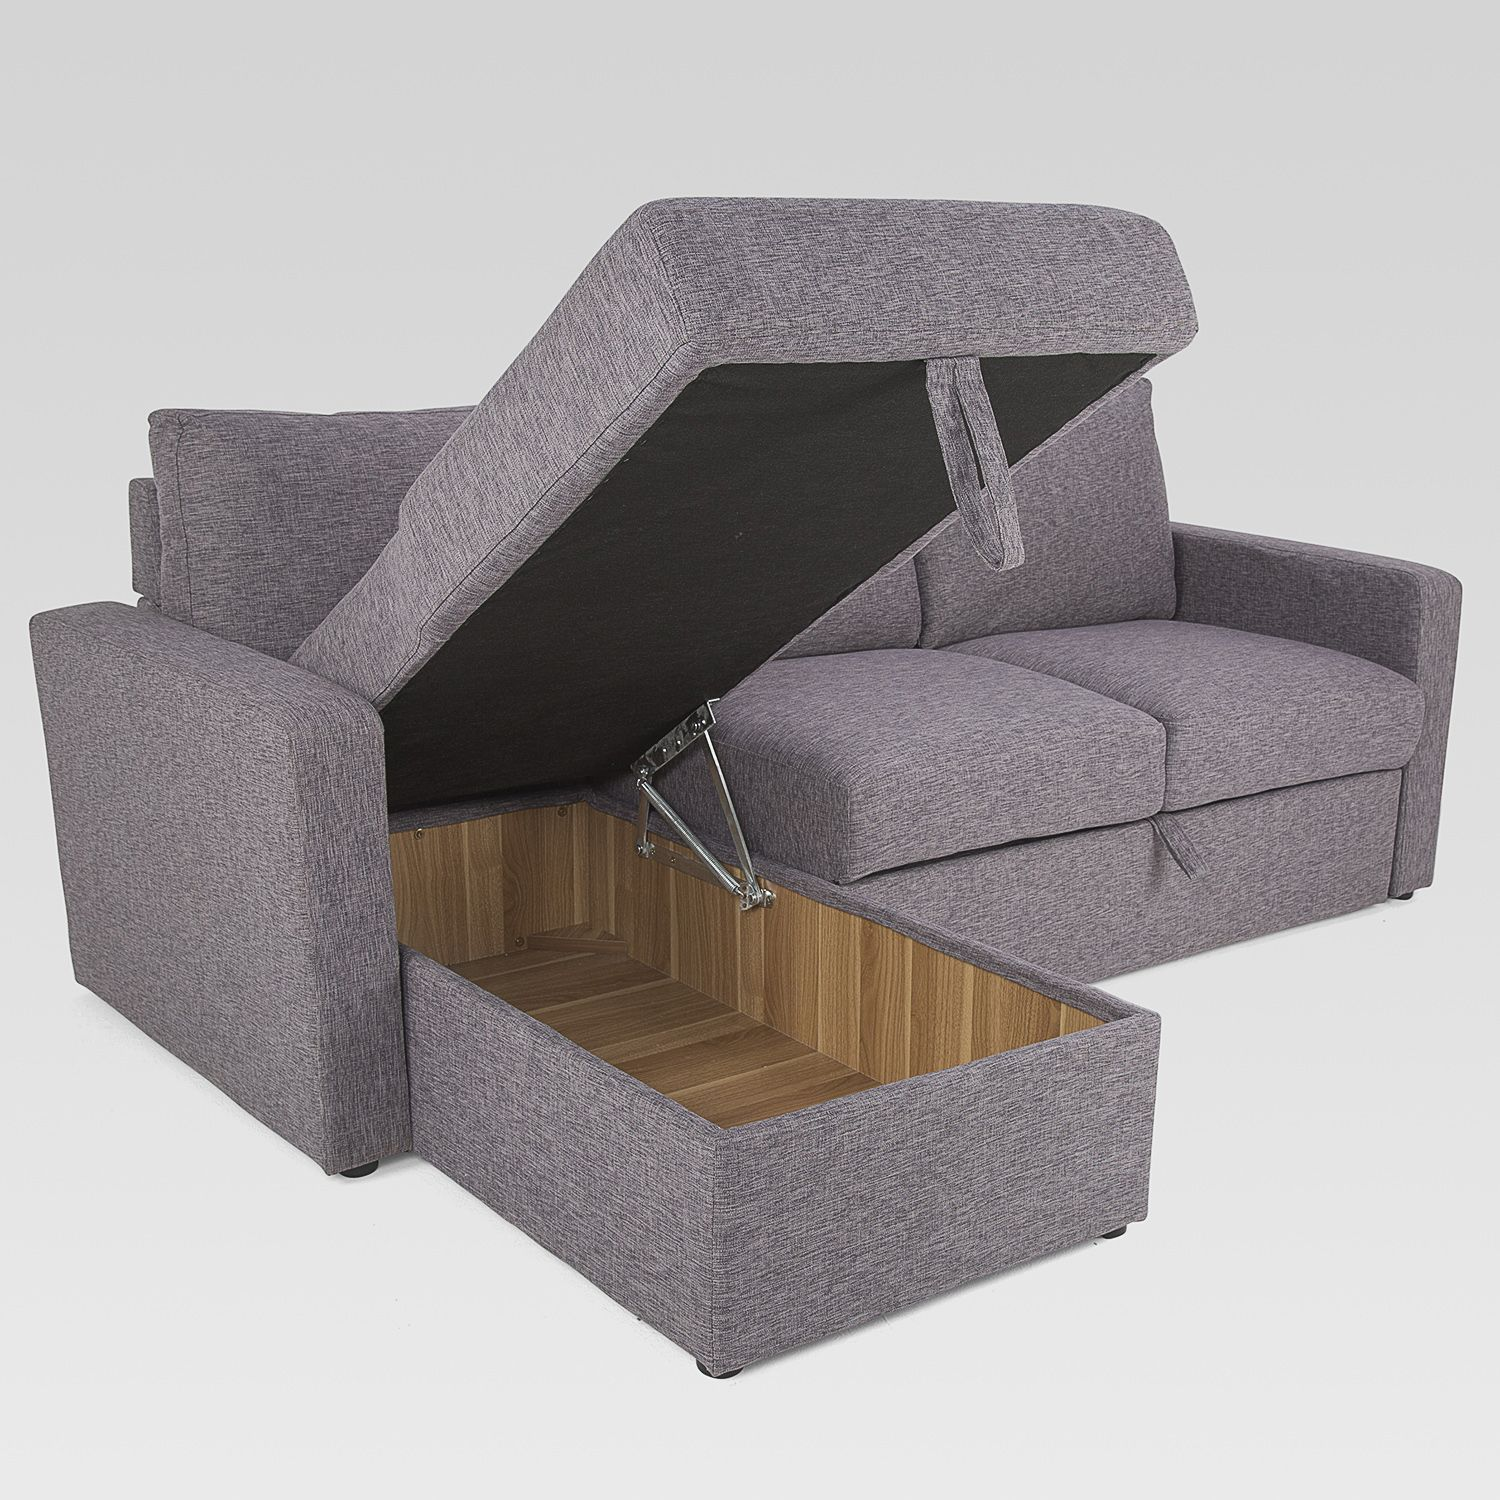 Sophia Fabric Corner Chaise Storage Sofabed Next Day Delivery Sophia Fabric Corner Chaise Storage Sofabed Sofa Bed Chaise Home Decor